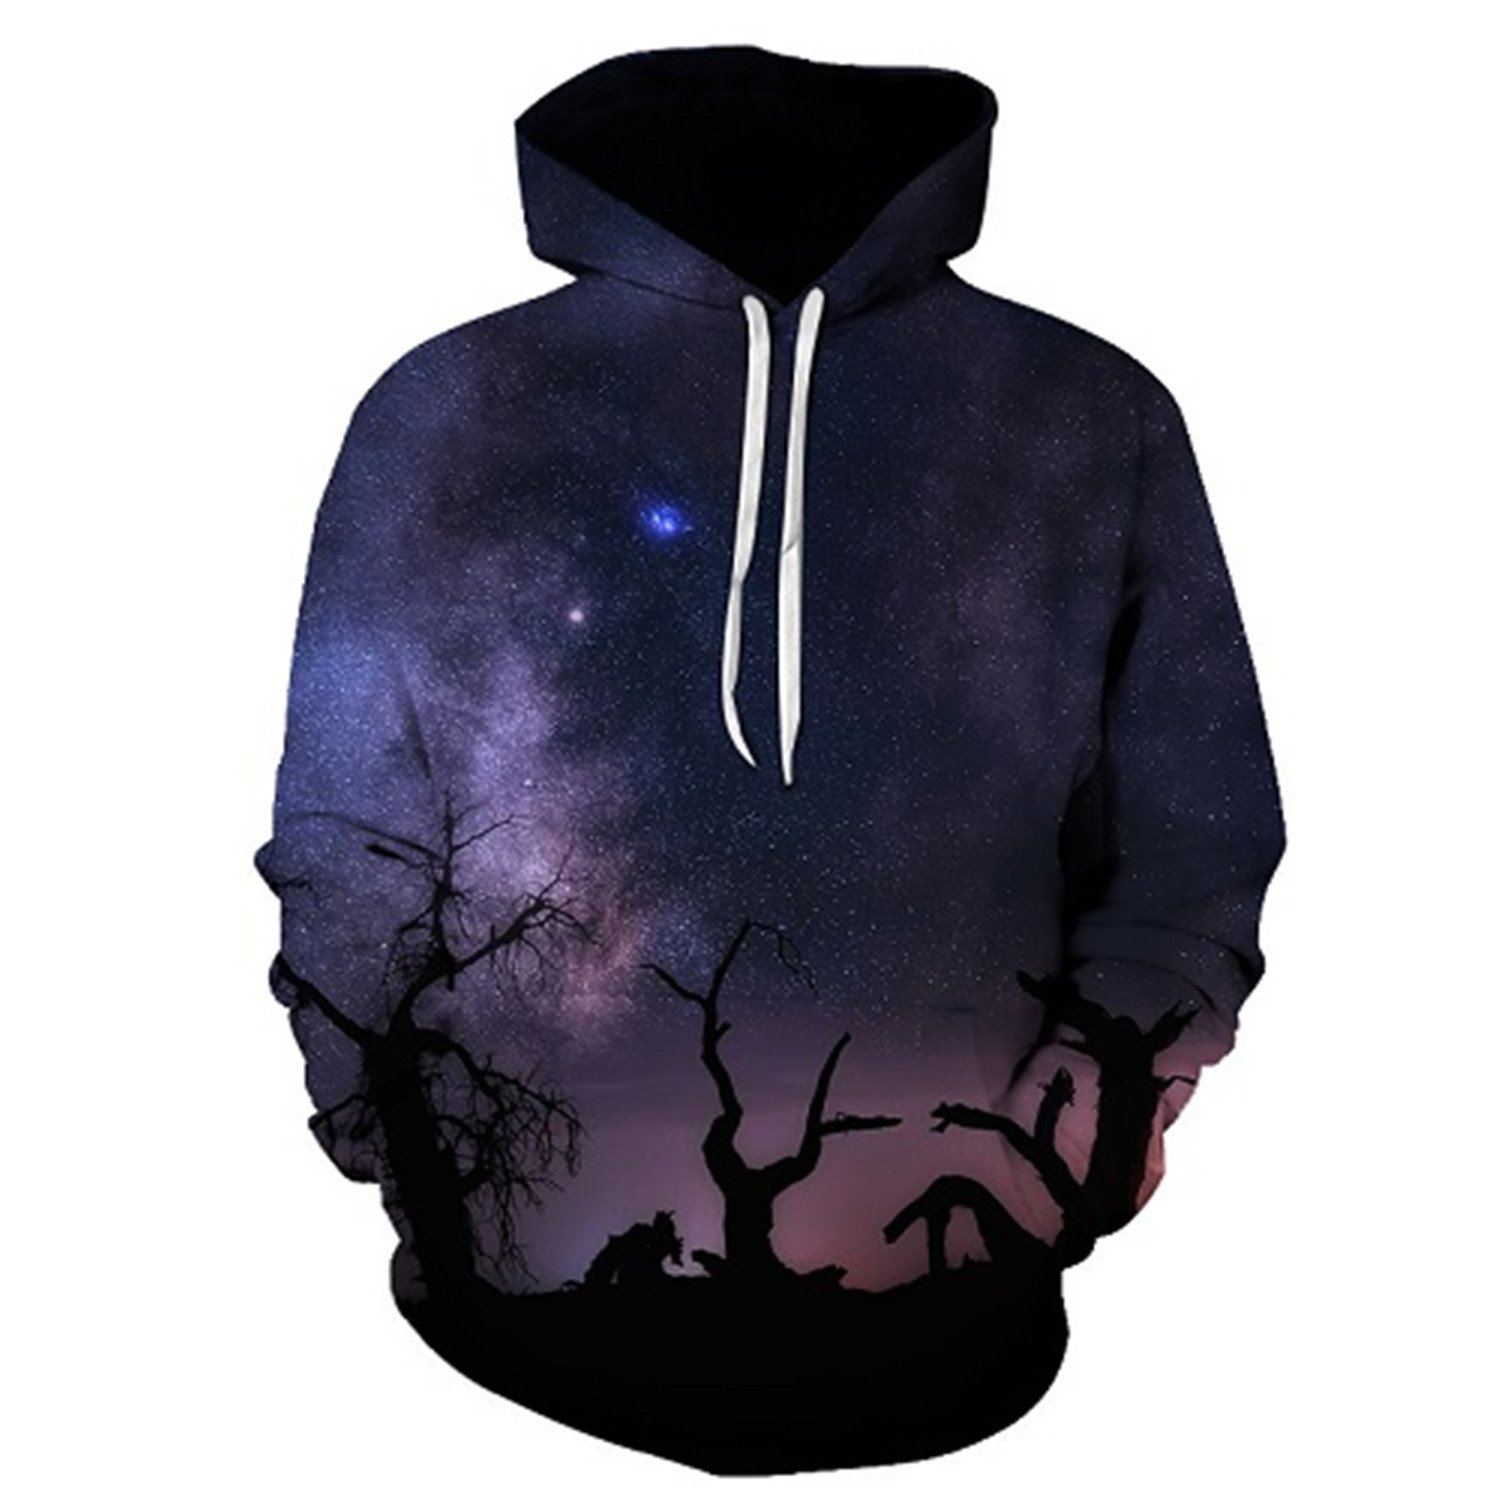 Matterin Christiao Space Night Printed Hoodies Unisex Sweatshirts 3D Pullovers Men Tracksuits Novelty Jacket